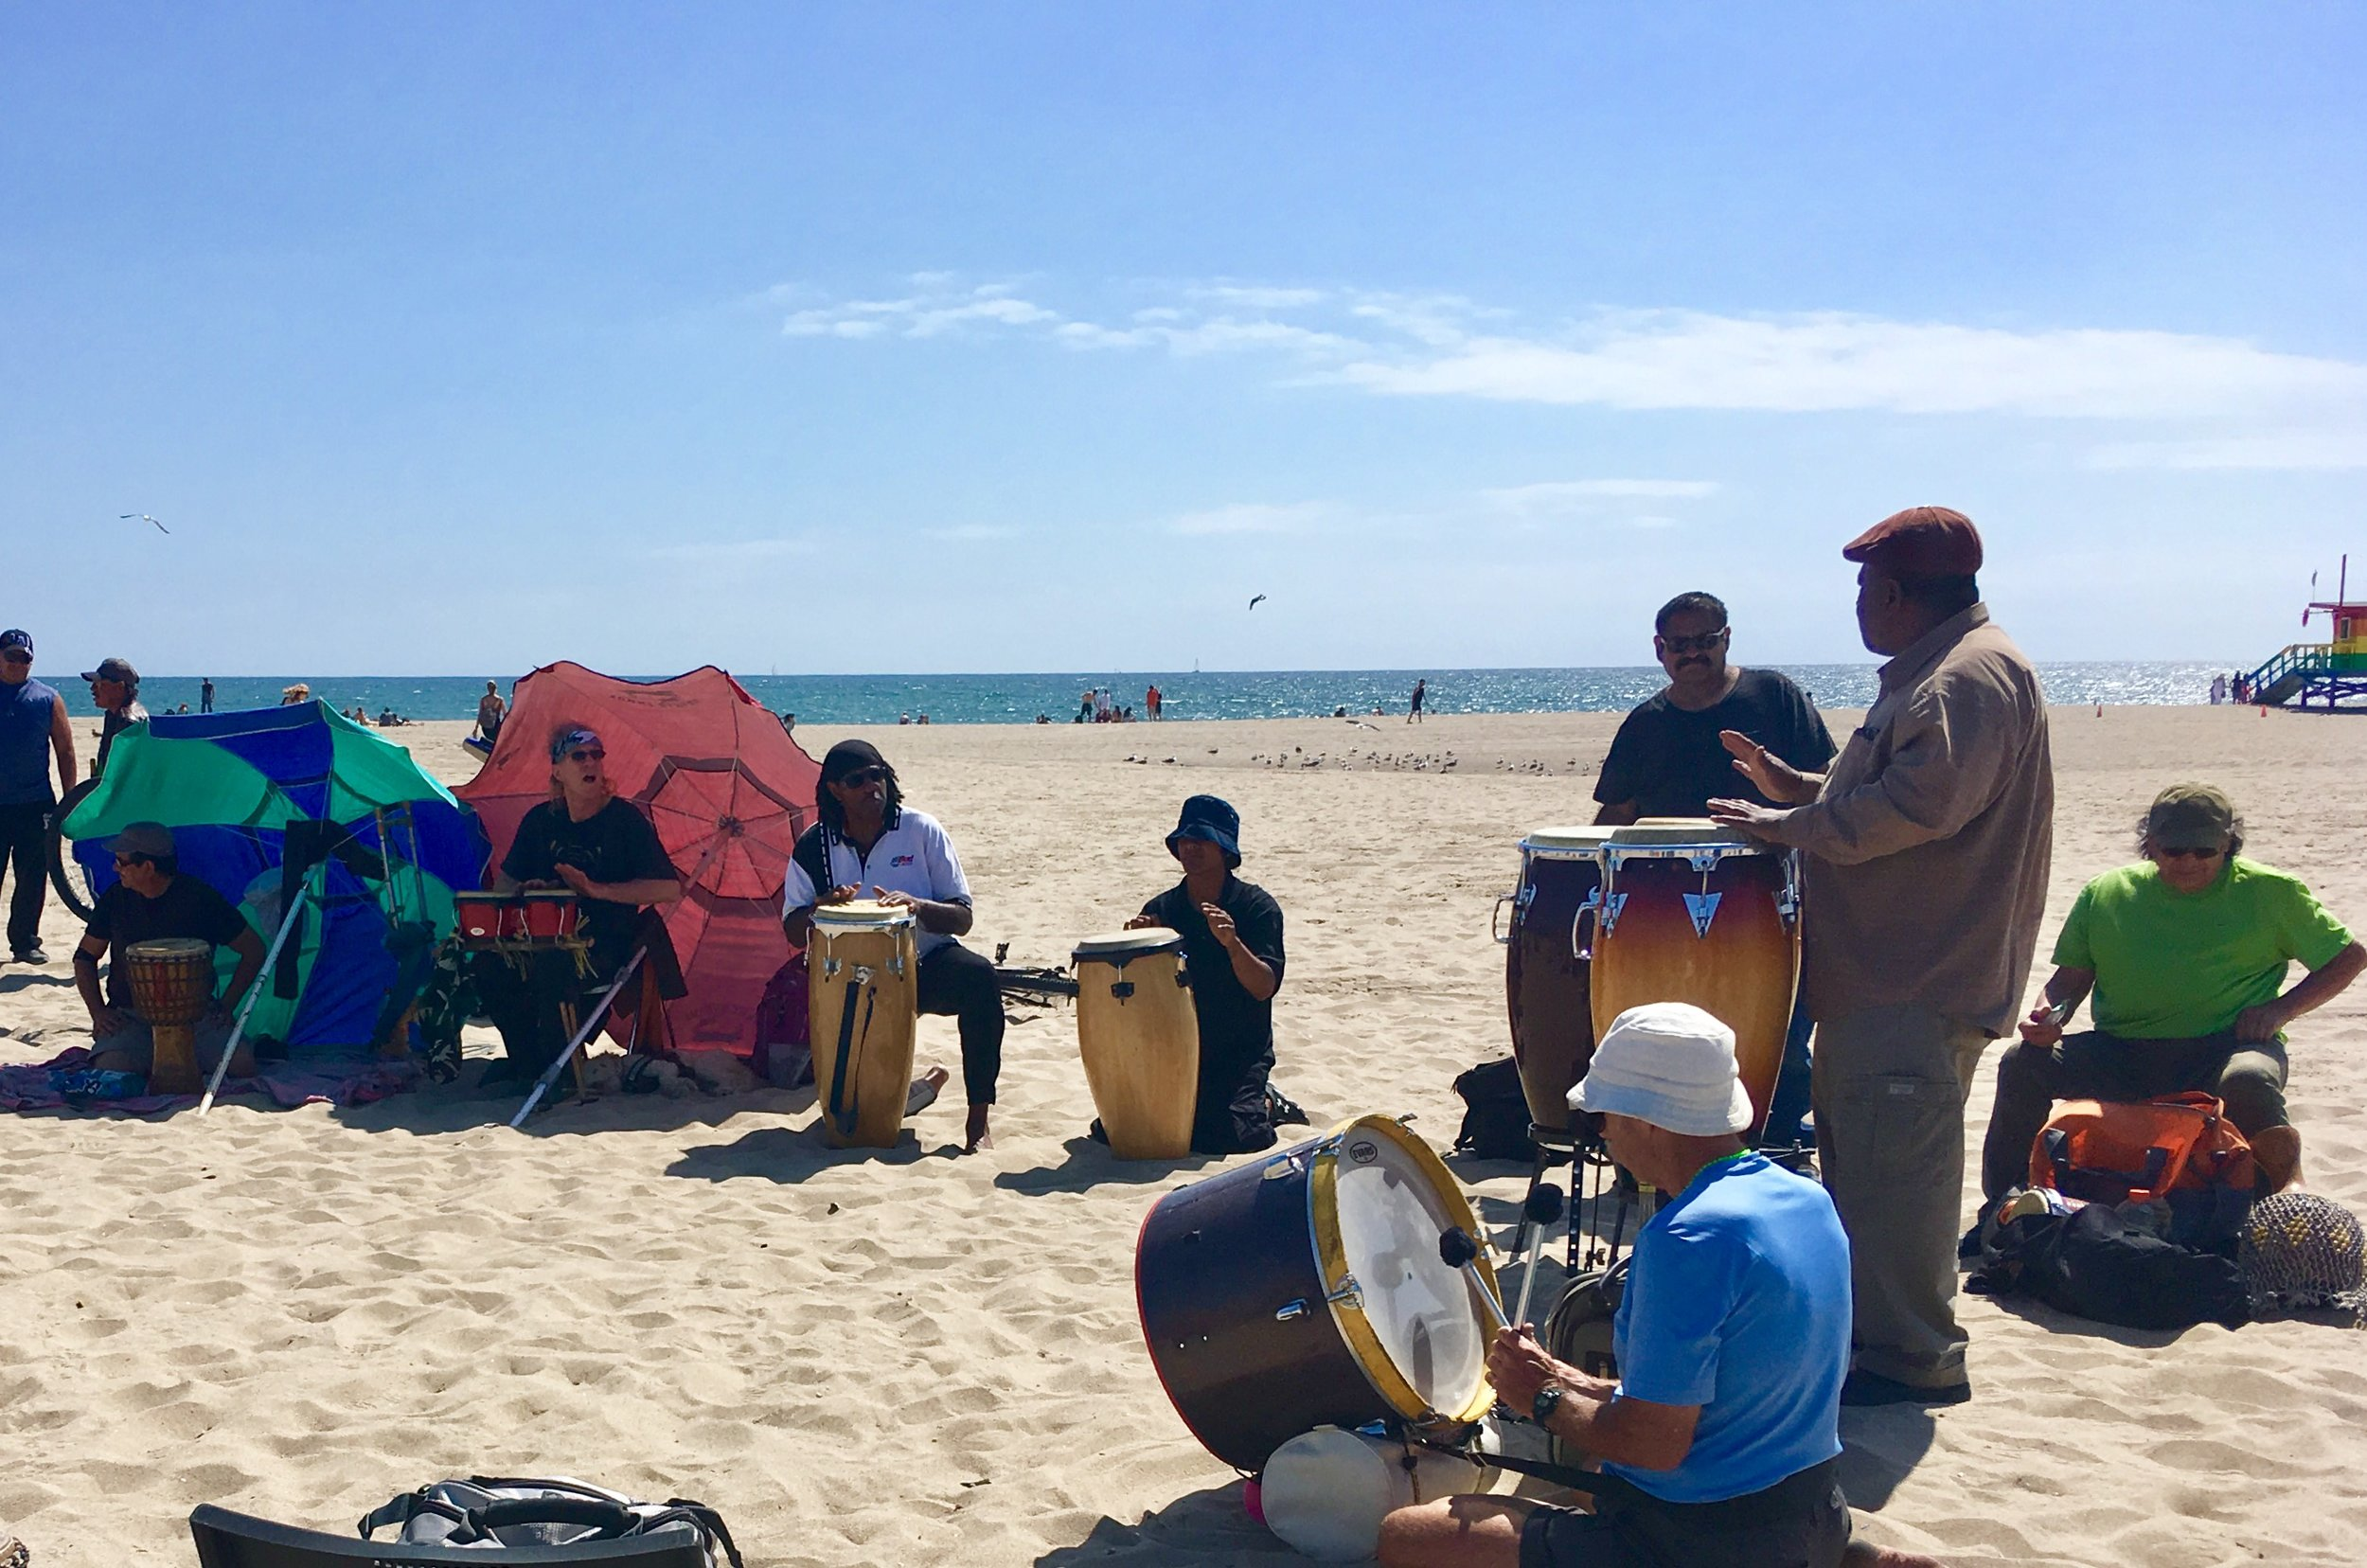 Drummers keep the beat of World Peaec on Sunday's at Venice Beach.